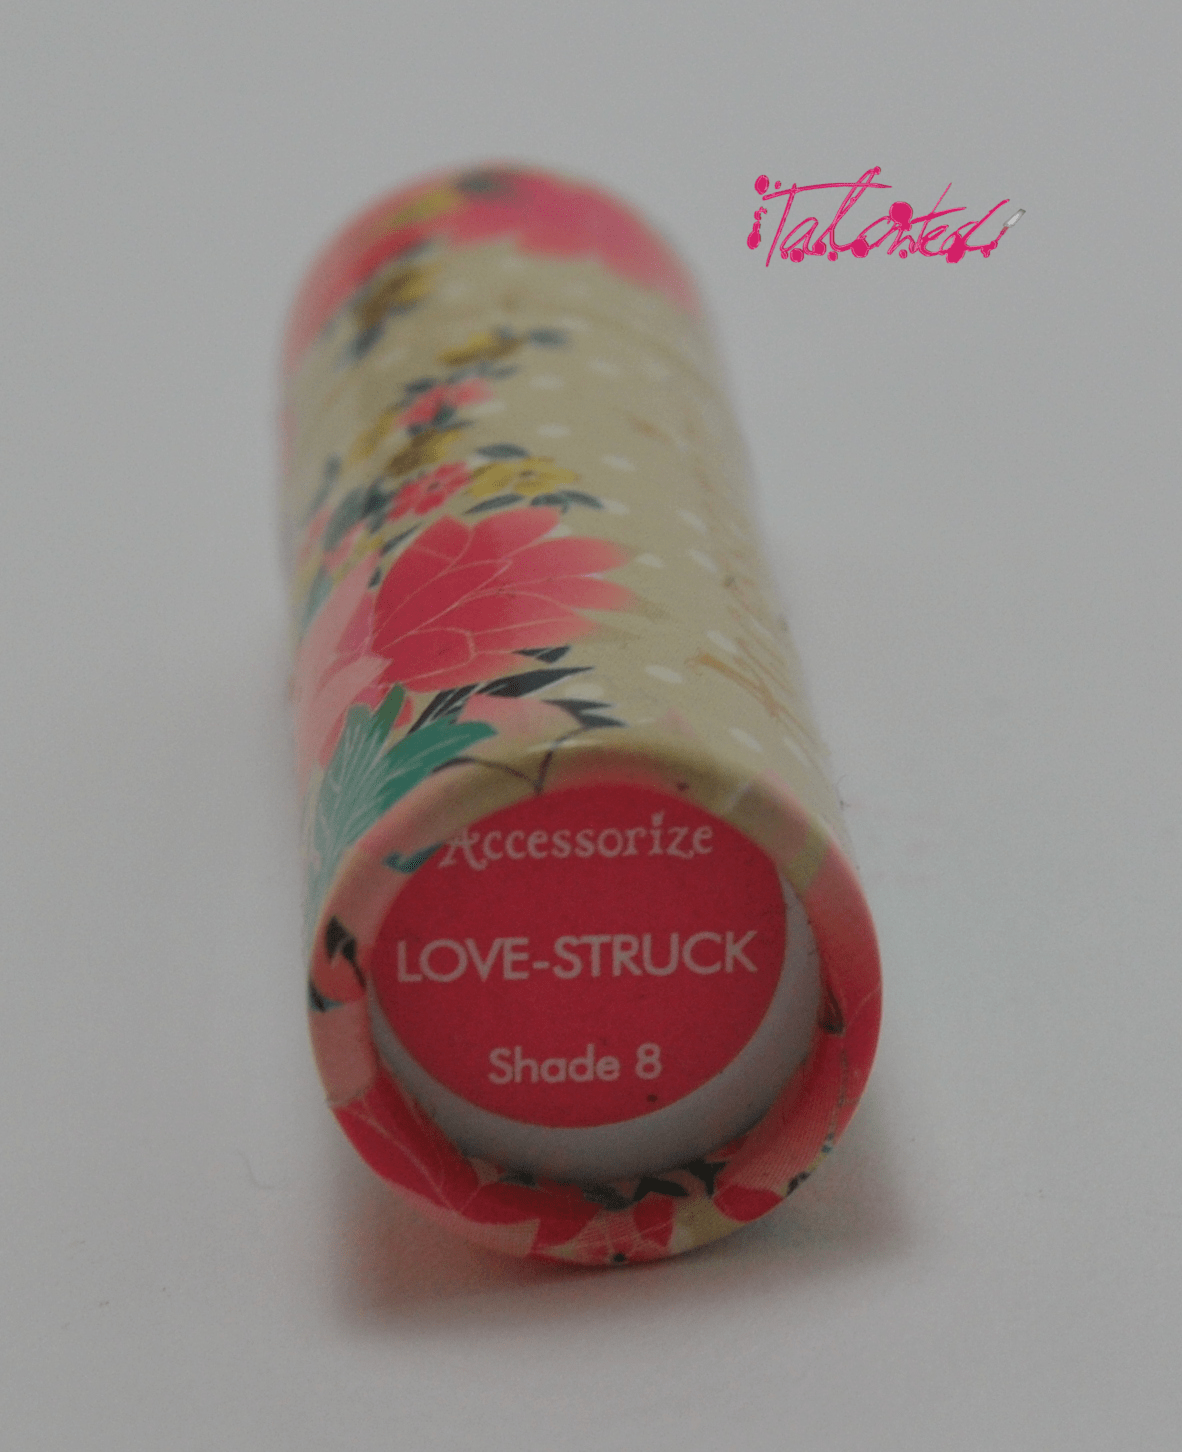 Accessorize Lovestruck lipstick